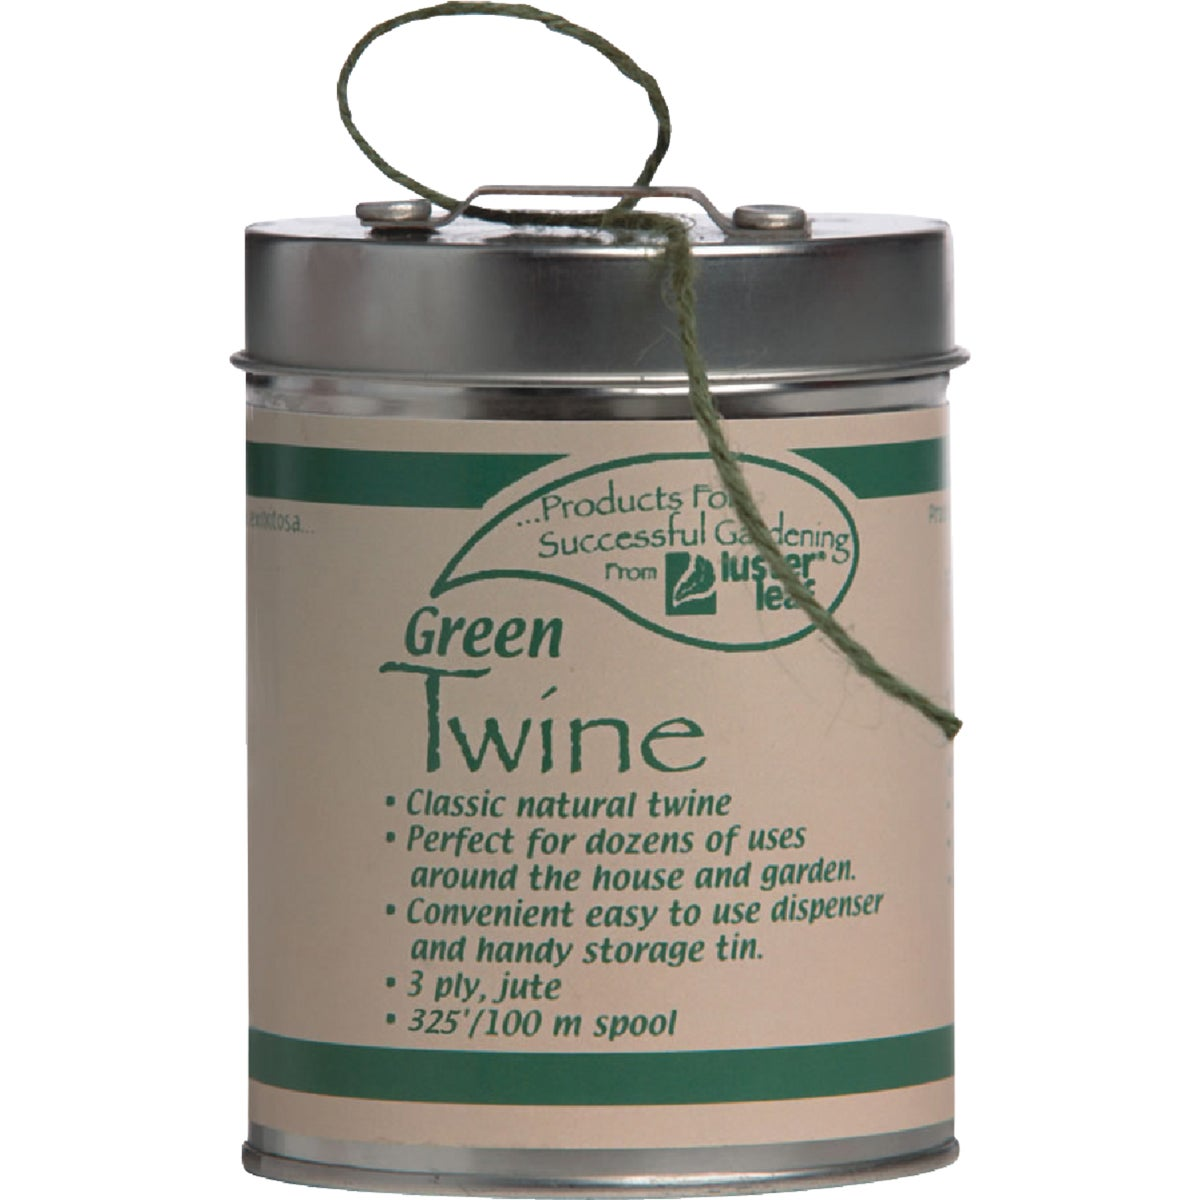 325' CAN GREEN TWINE - 404 by Luster Leaf Prod Inc